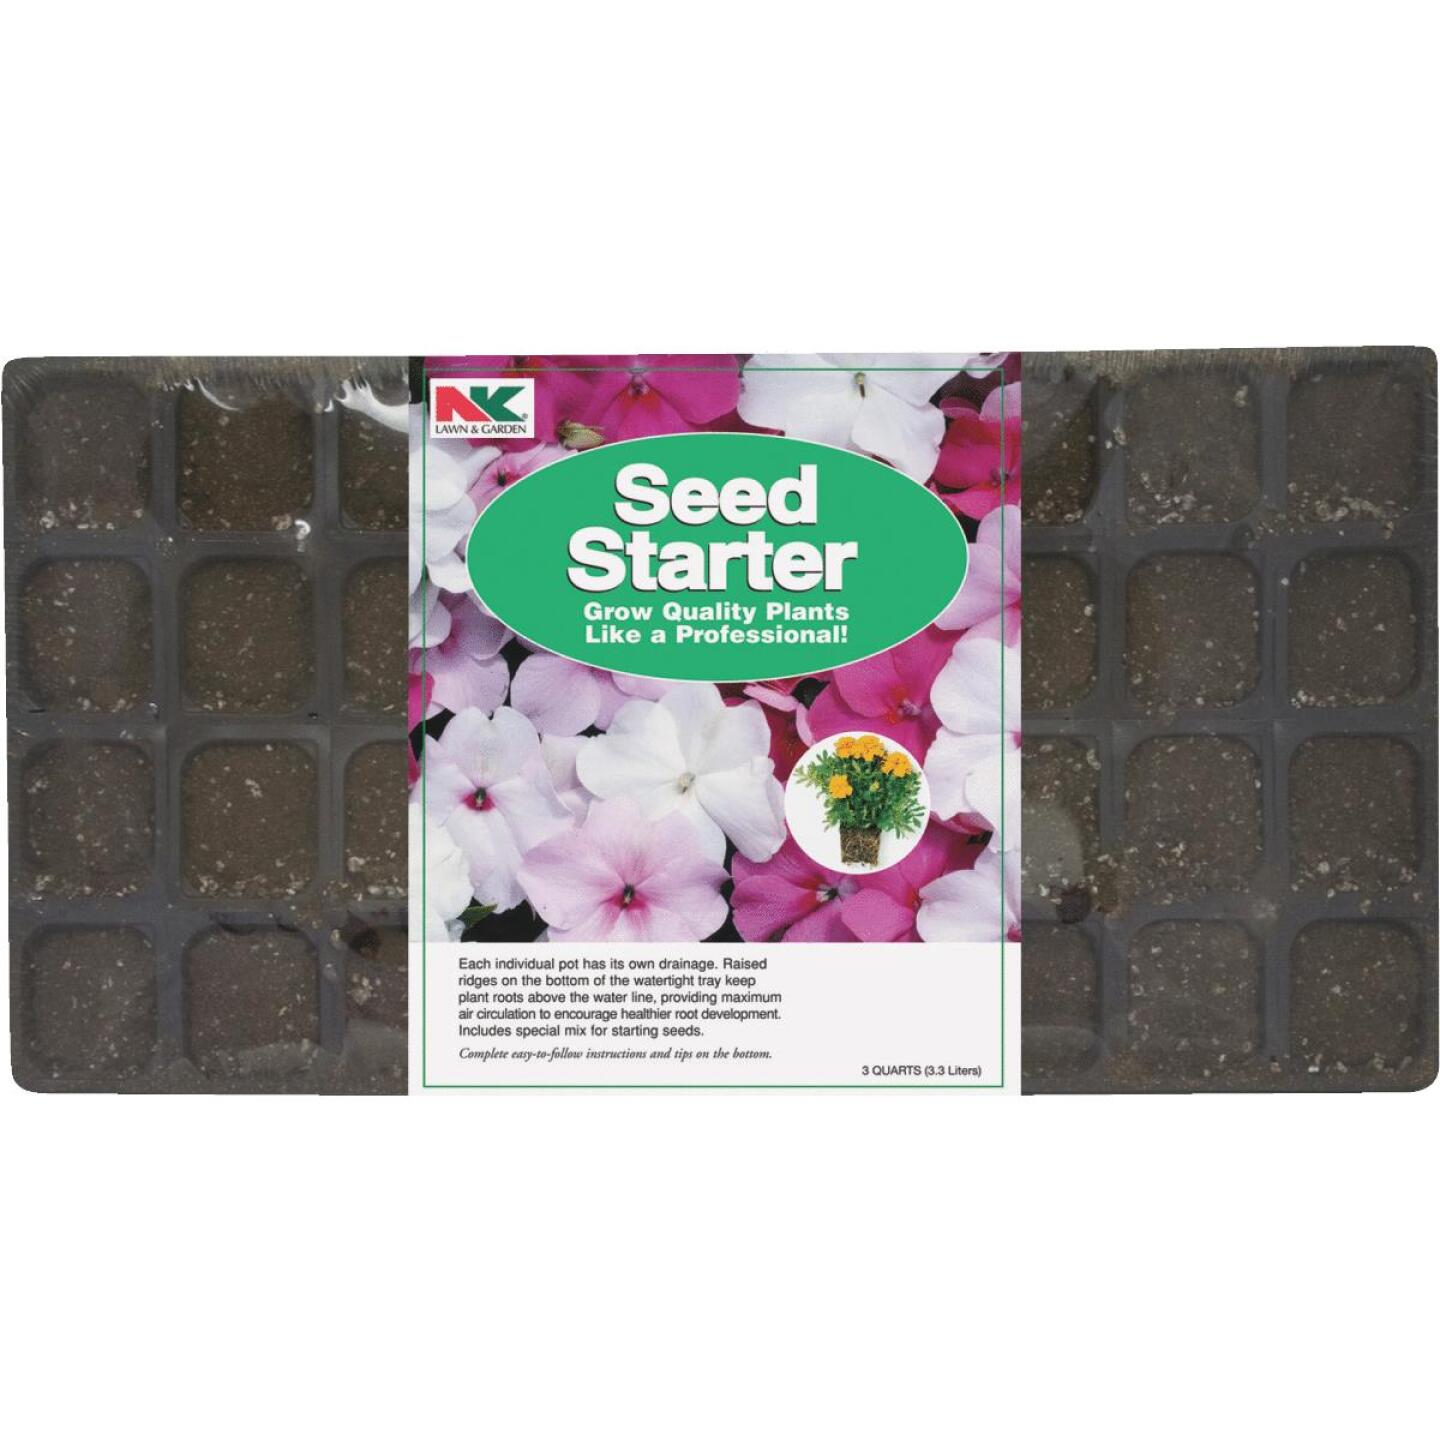 NK 36-Cell 22 In. W. x 11 In. D. Seed Starter Kit Image 1